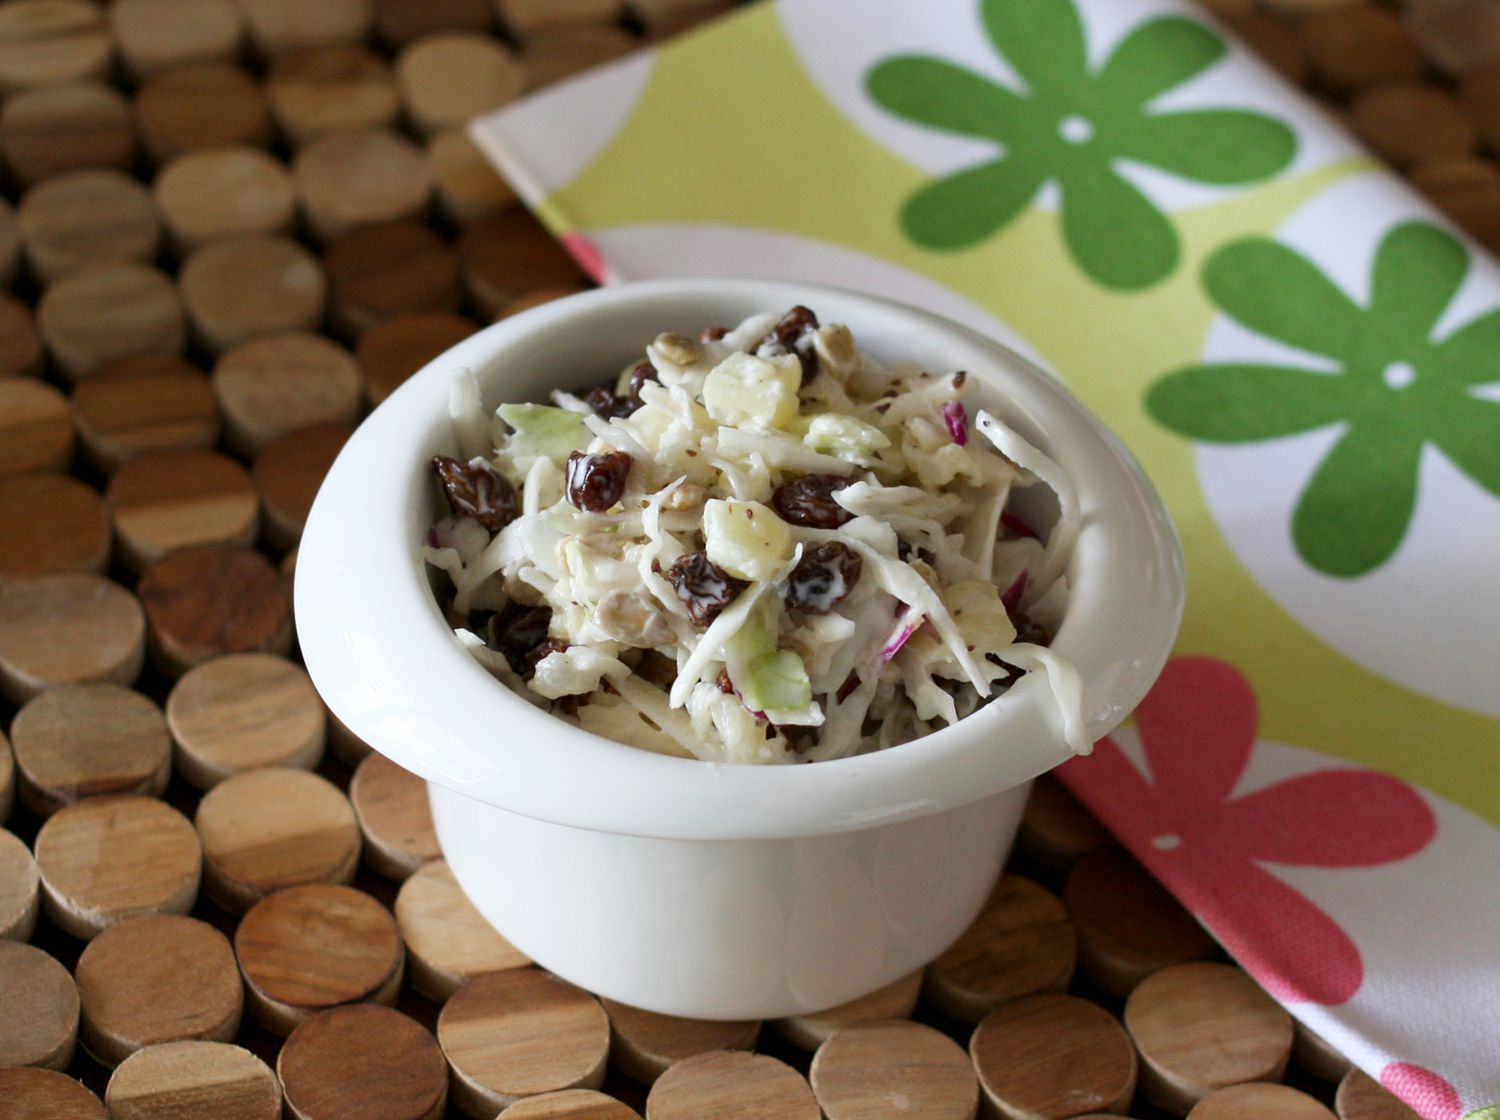 Creamy Coleslaw With Pineapple